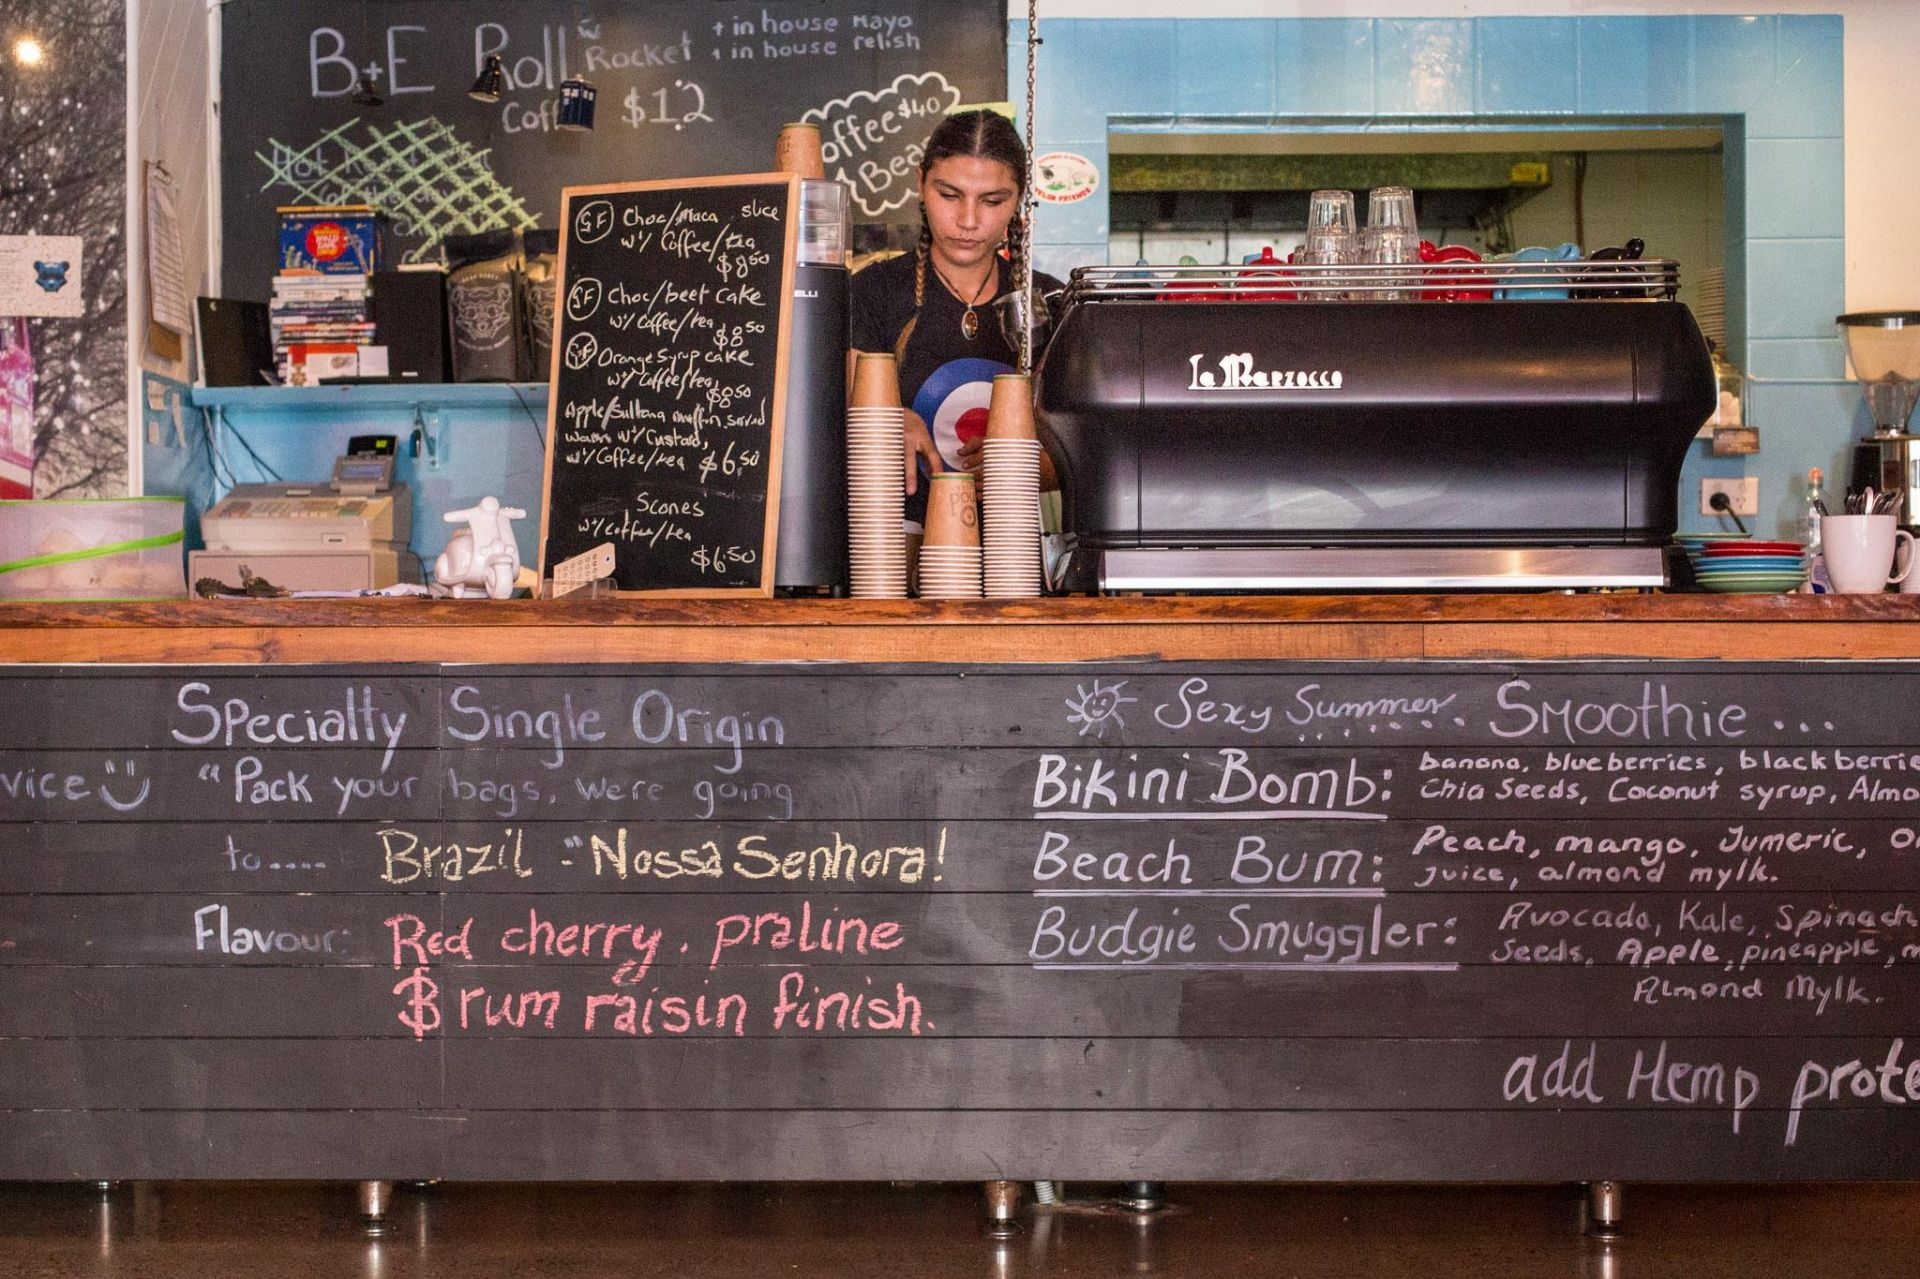 Cafe Mod Barista - Licensed Cafe in the Heart of Cabarita Beach